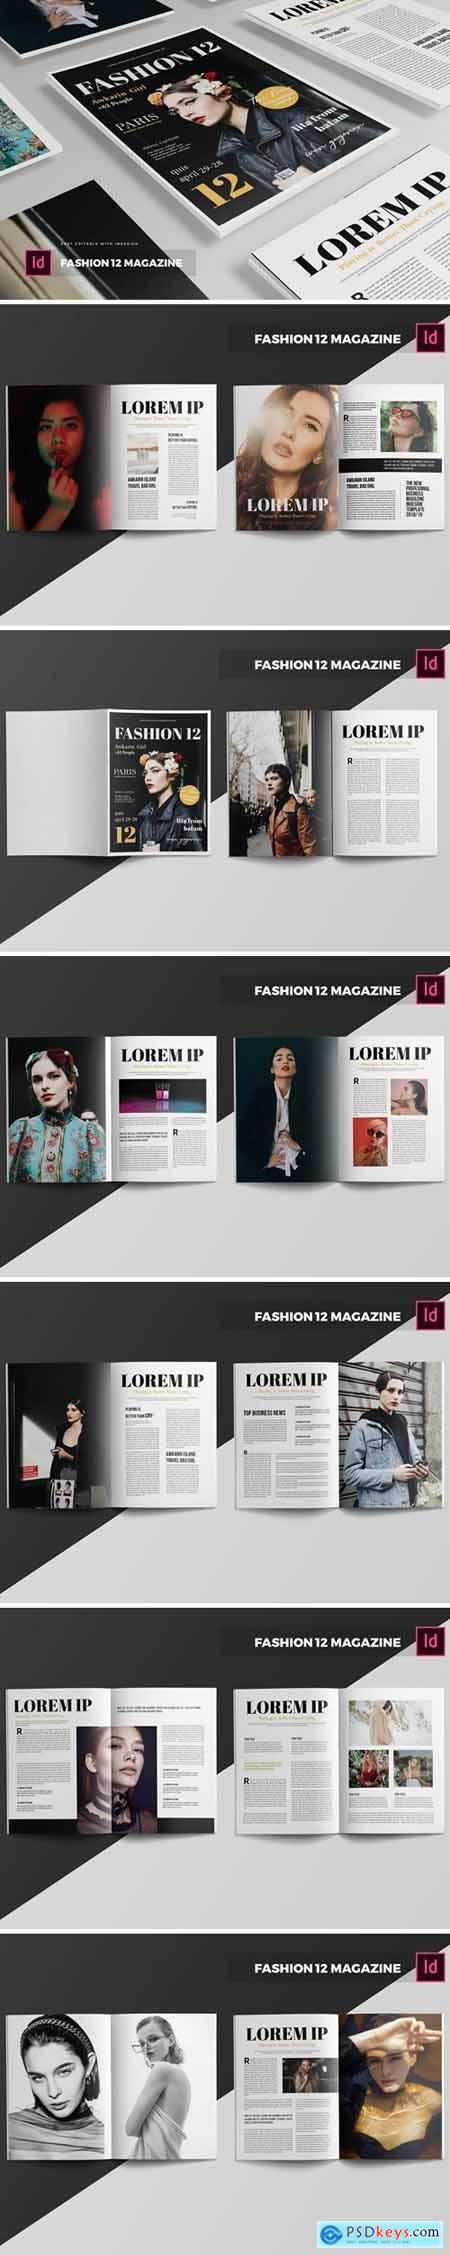 Fashion 12 Magazine Template